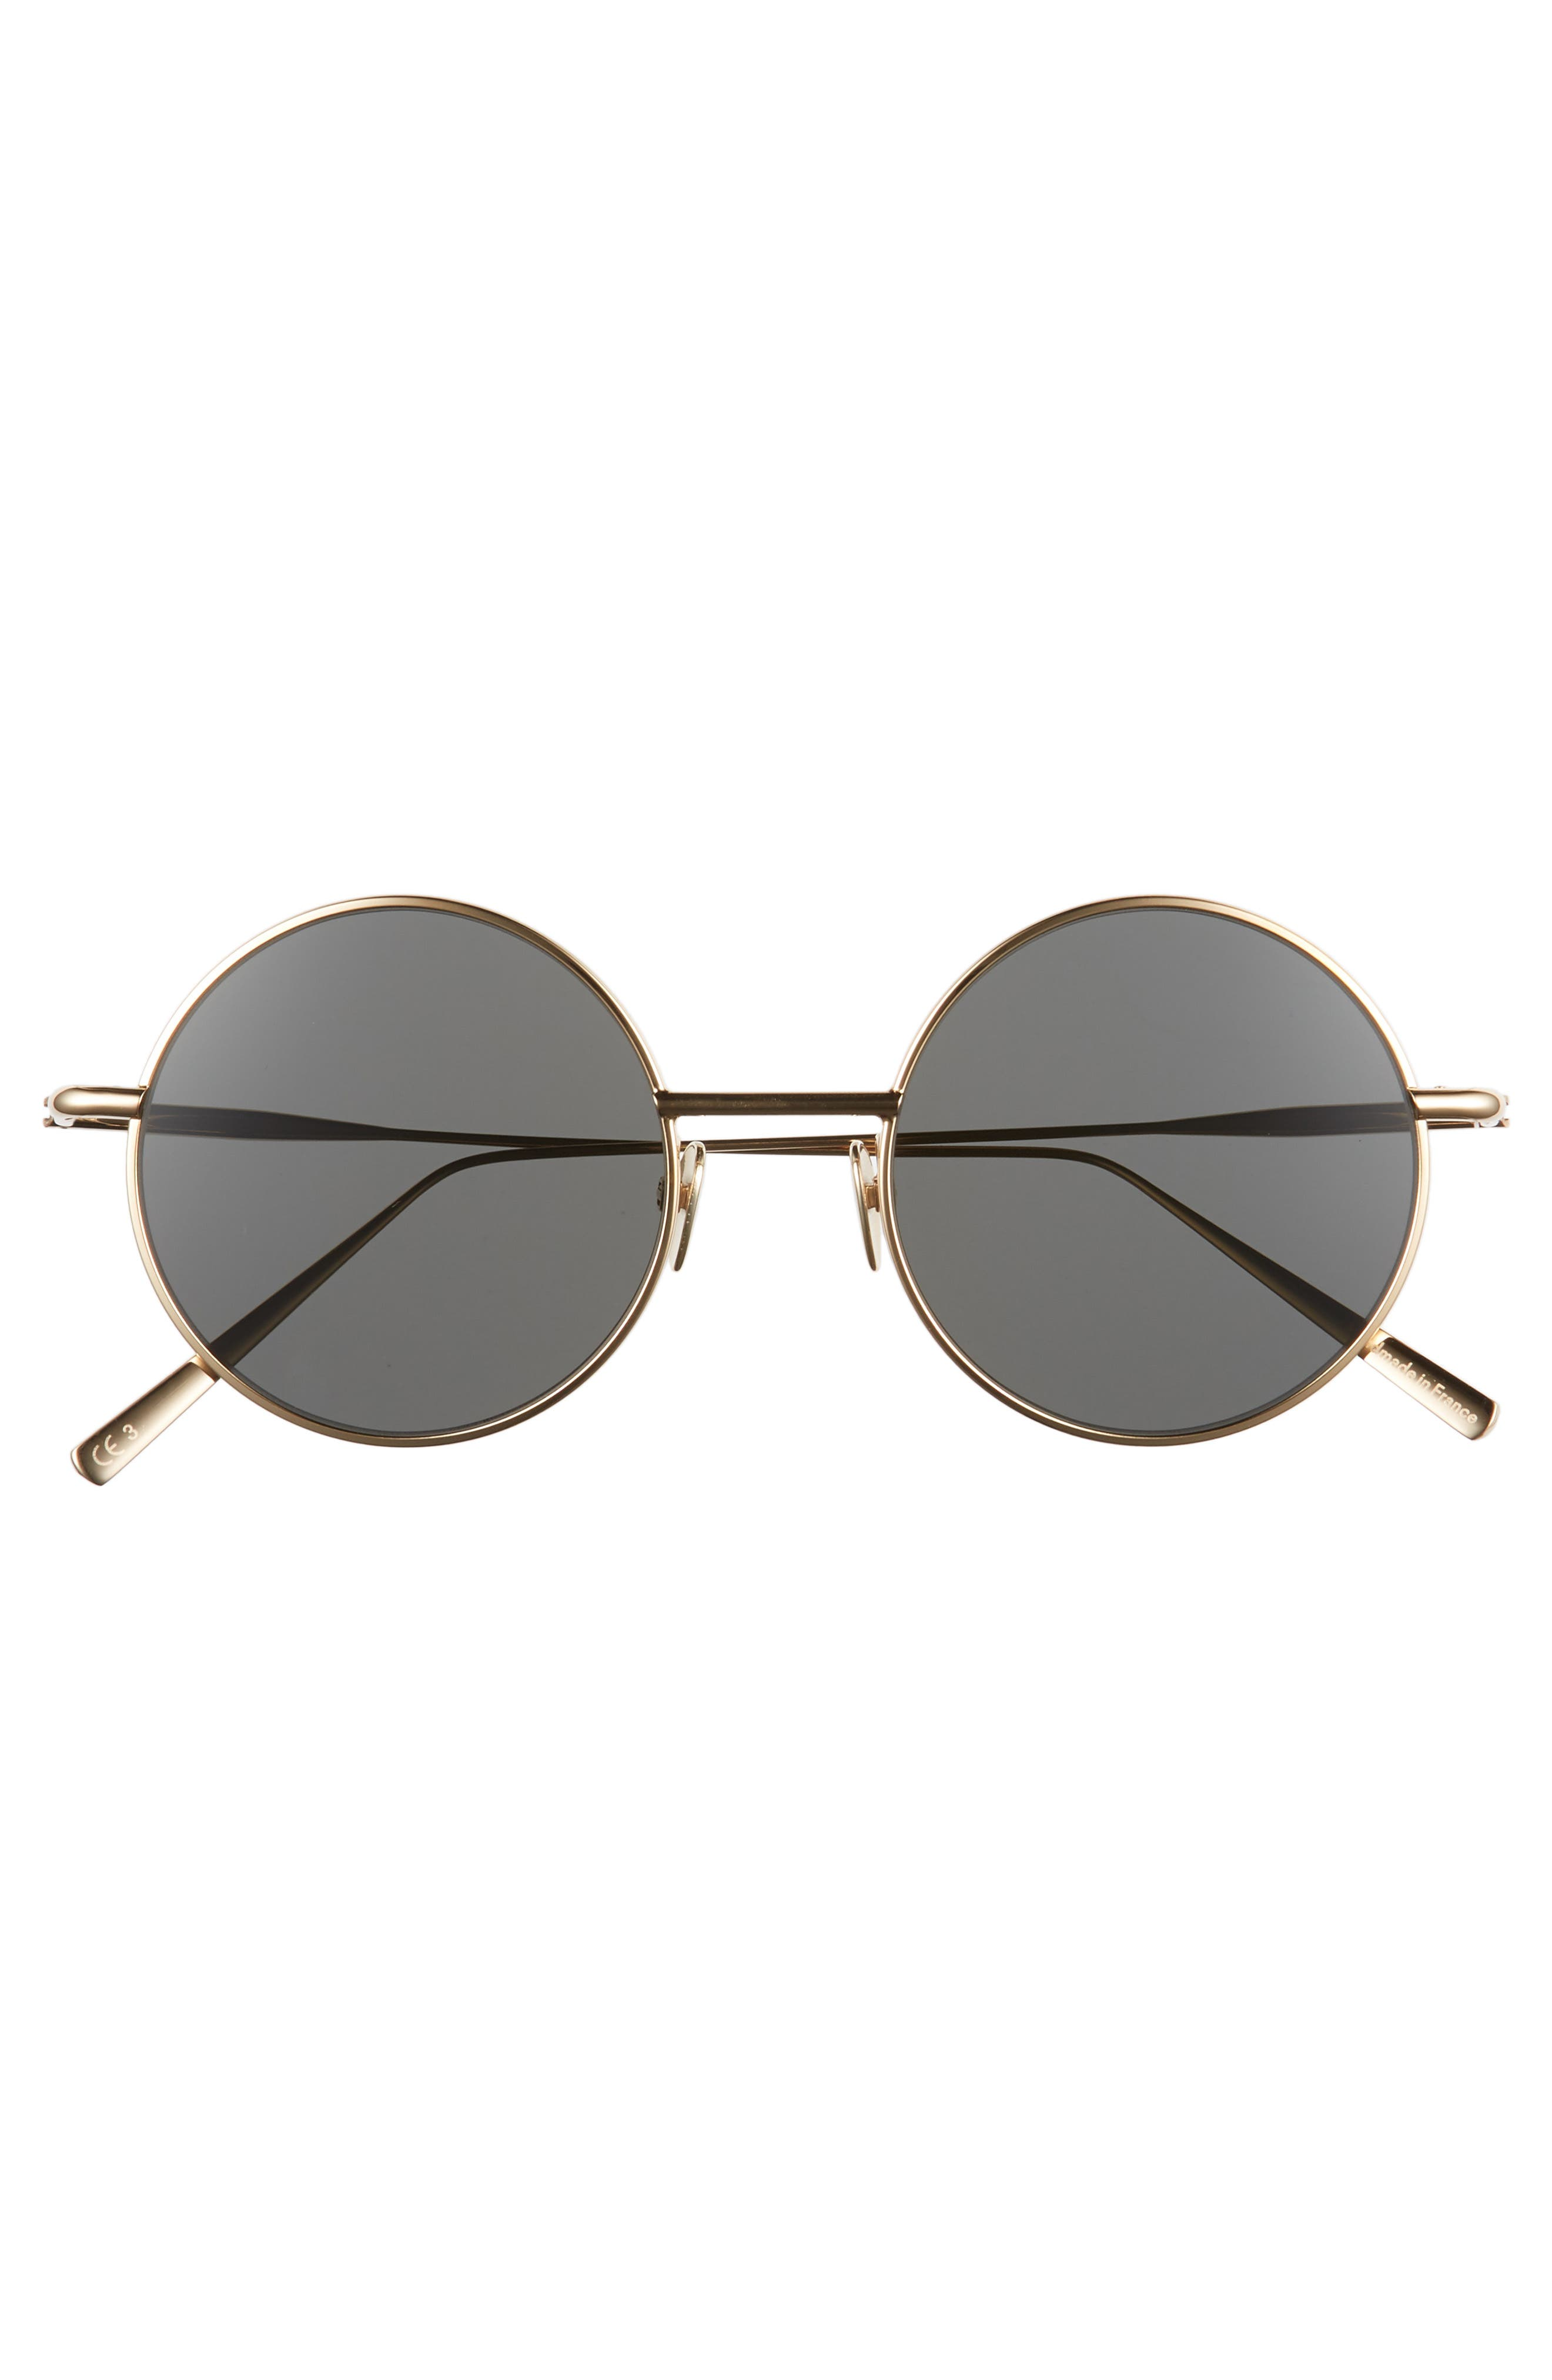 Scientist 50mm Round Sunglasses,                             Alternate thumbnail 3, color,                             001